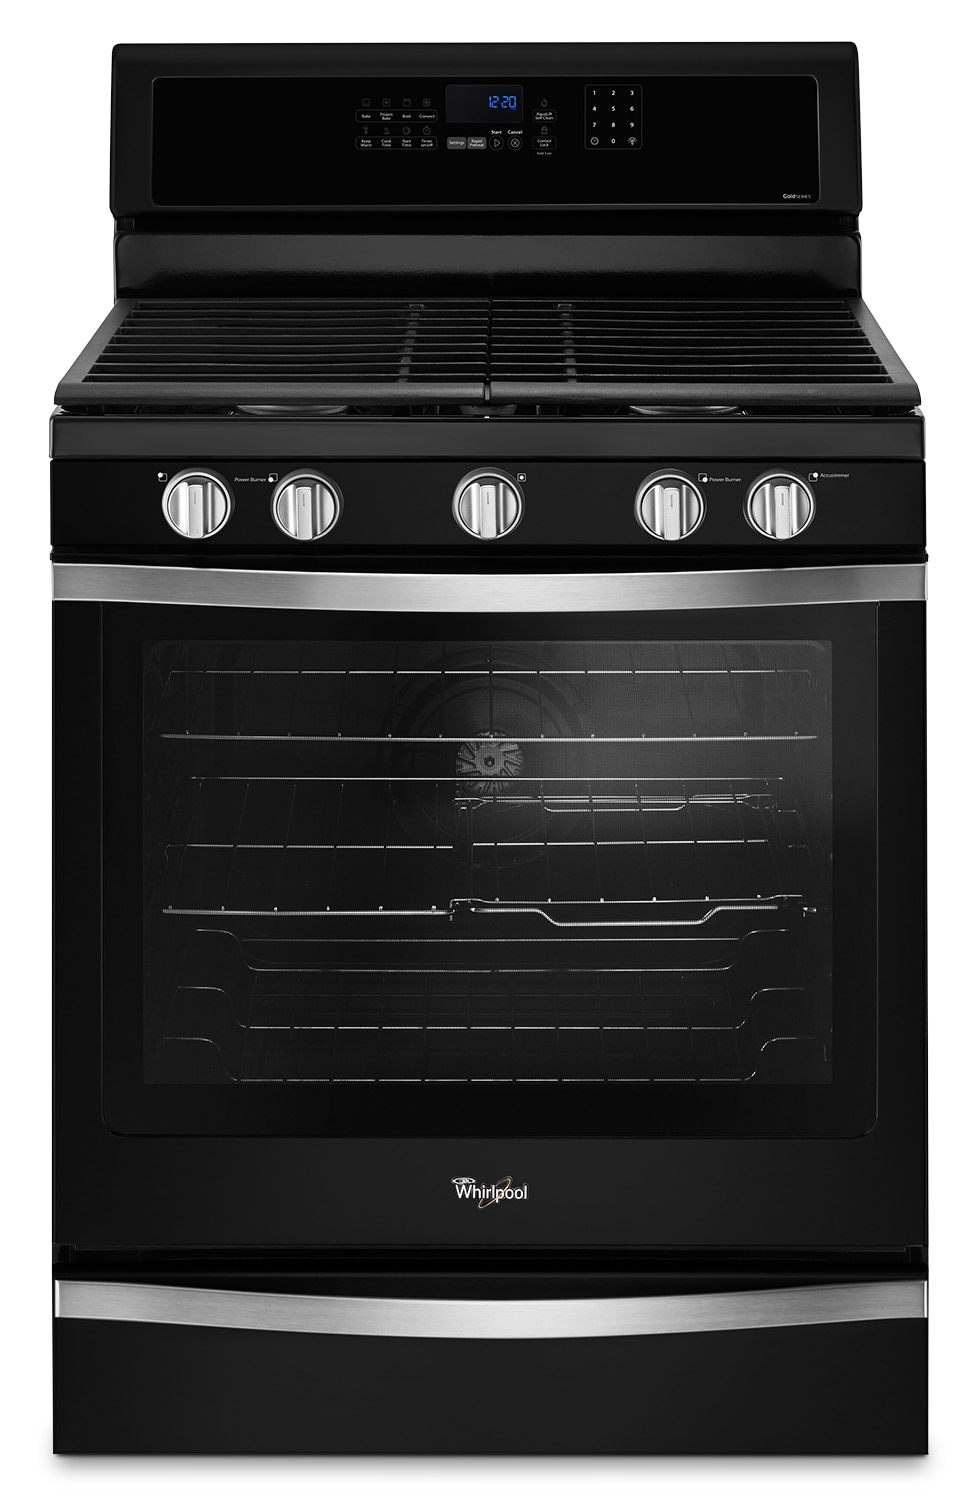 Cooking Products - Whirlpool 5.8 Cu. Ft. Freestanding Gas Range – WFG745H0FE